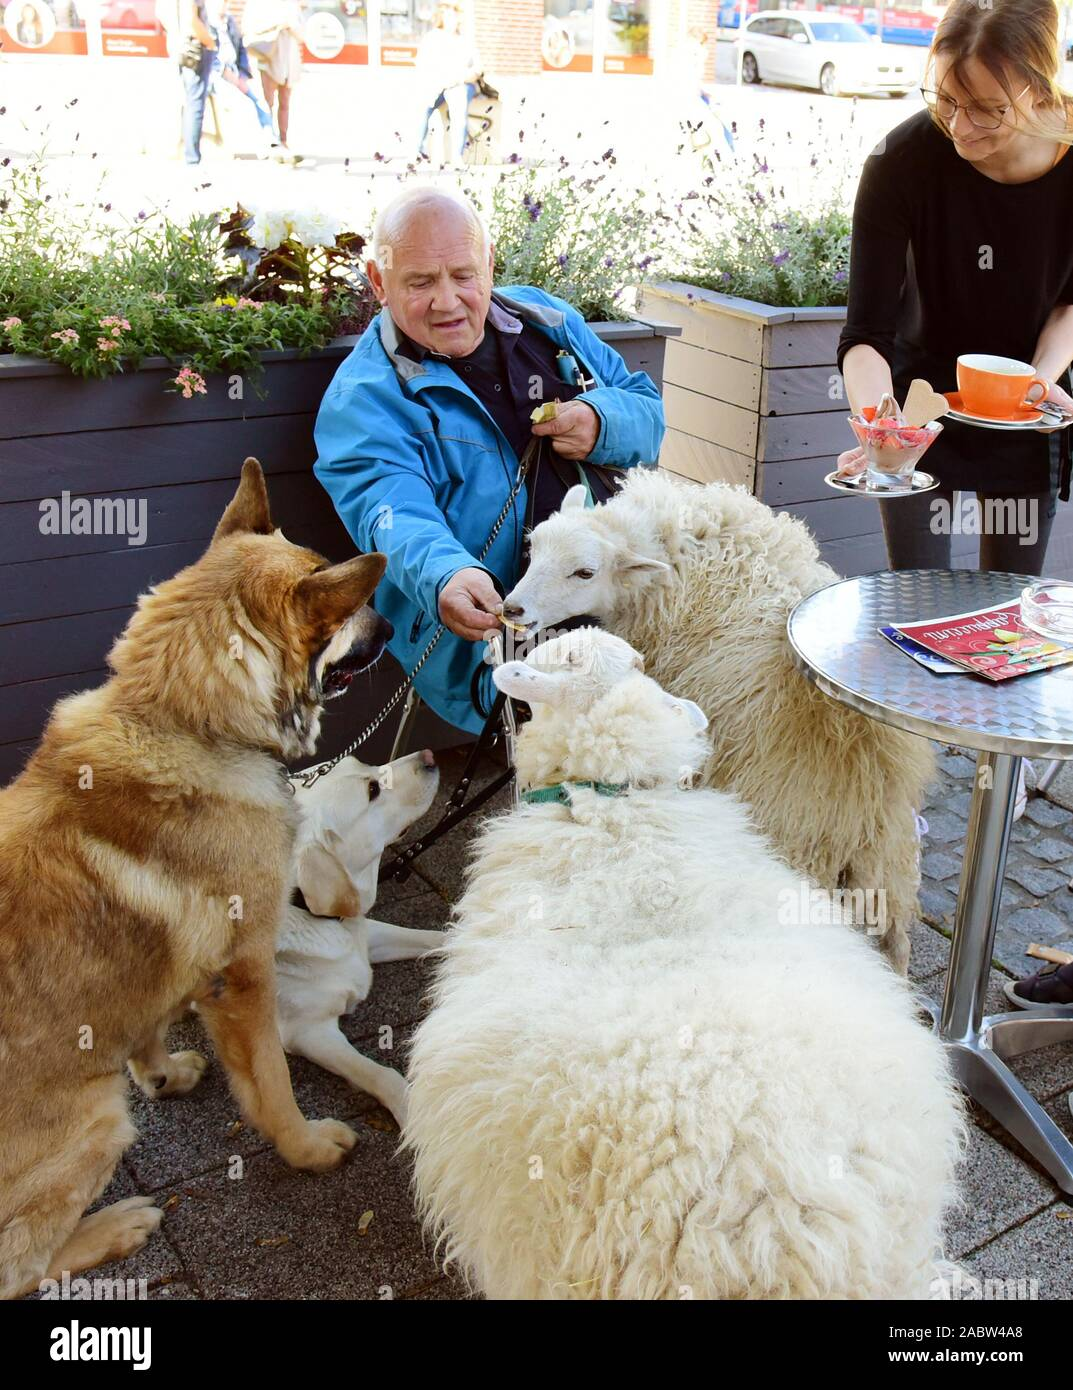 Schkeuditz, Germany. 21st Oct, 2019. Werner Dreßler sits with his animals, three dogs and two sheep in Jacqueline Rudolph's ice cream parlour. While he wants to enjoy ice cream and coffee, sheep and dogs are already waiting for the obligatory delicious biscuits. The 79-year-old master toolmaker takes the animals for a walk in the city every day and is an eye-catcher for locals and visitors alike. Credit: Waltraud Grubitzsch/dpa-Zentralbild/ZB/dpa/Alamy Live News Stock Photo